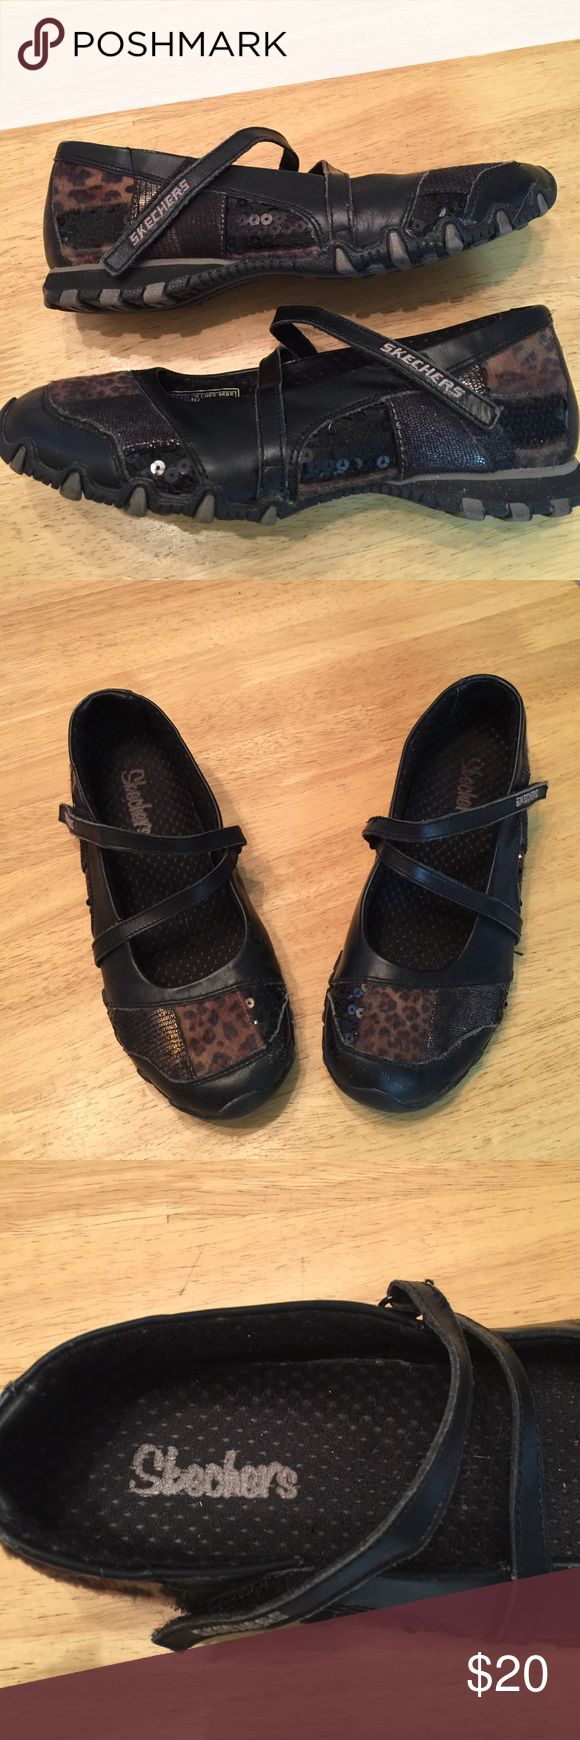 Skecher Mary Janes Skecher Mary Janes with SEQUINS and leopard print patches. Adjustable Velcro straps. These have some wear on them but truly in EXCELLENT condition ❤️❤️❤️. These are size 6 Skechers Shoes Flats & Loafers